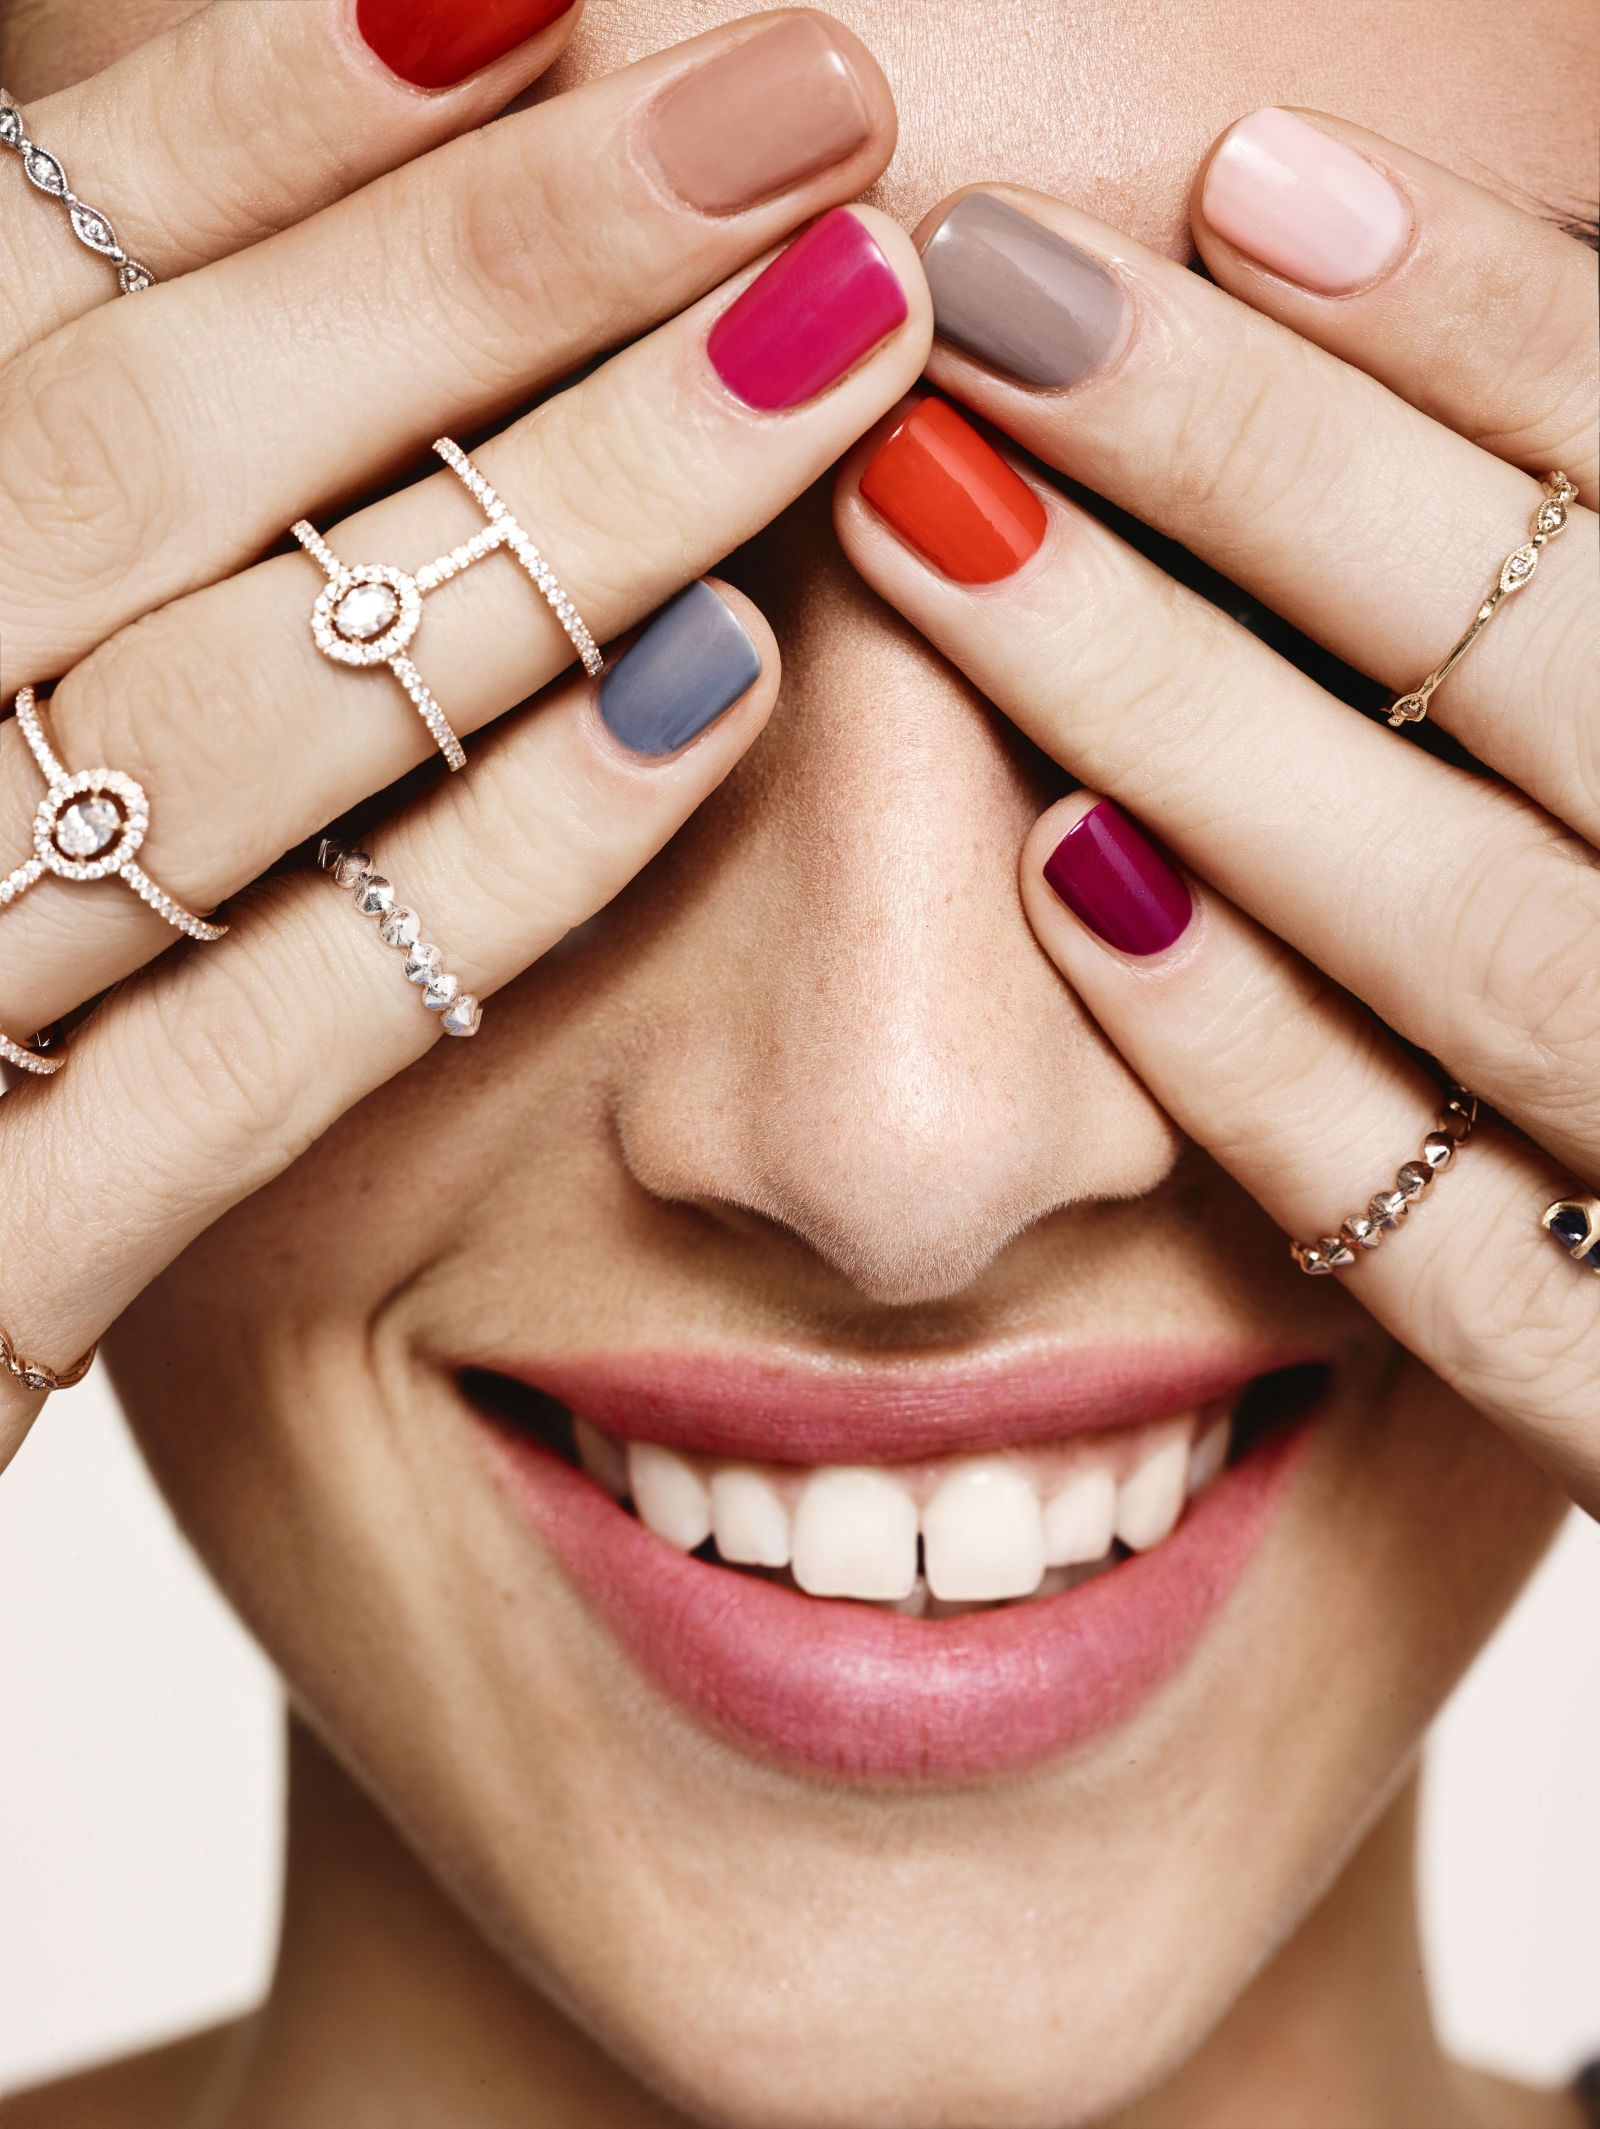 One Top Nail Artist Reveals The Secret to Achieving a Killer Mani ...